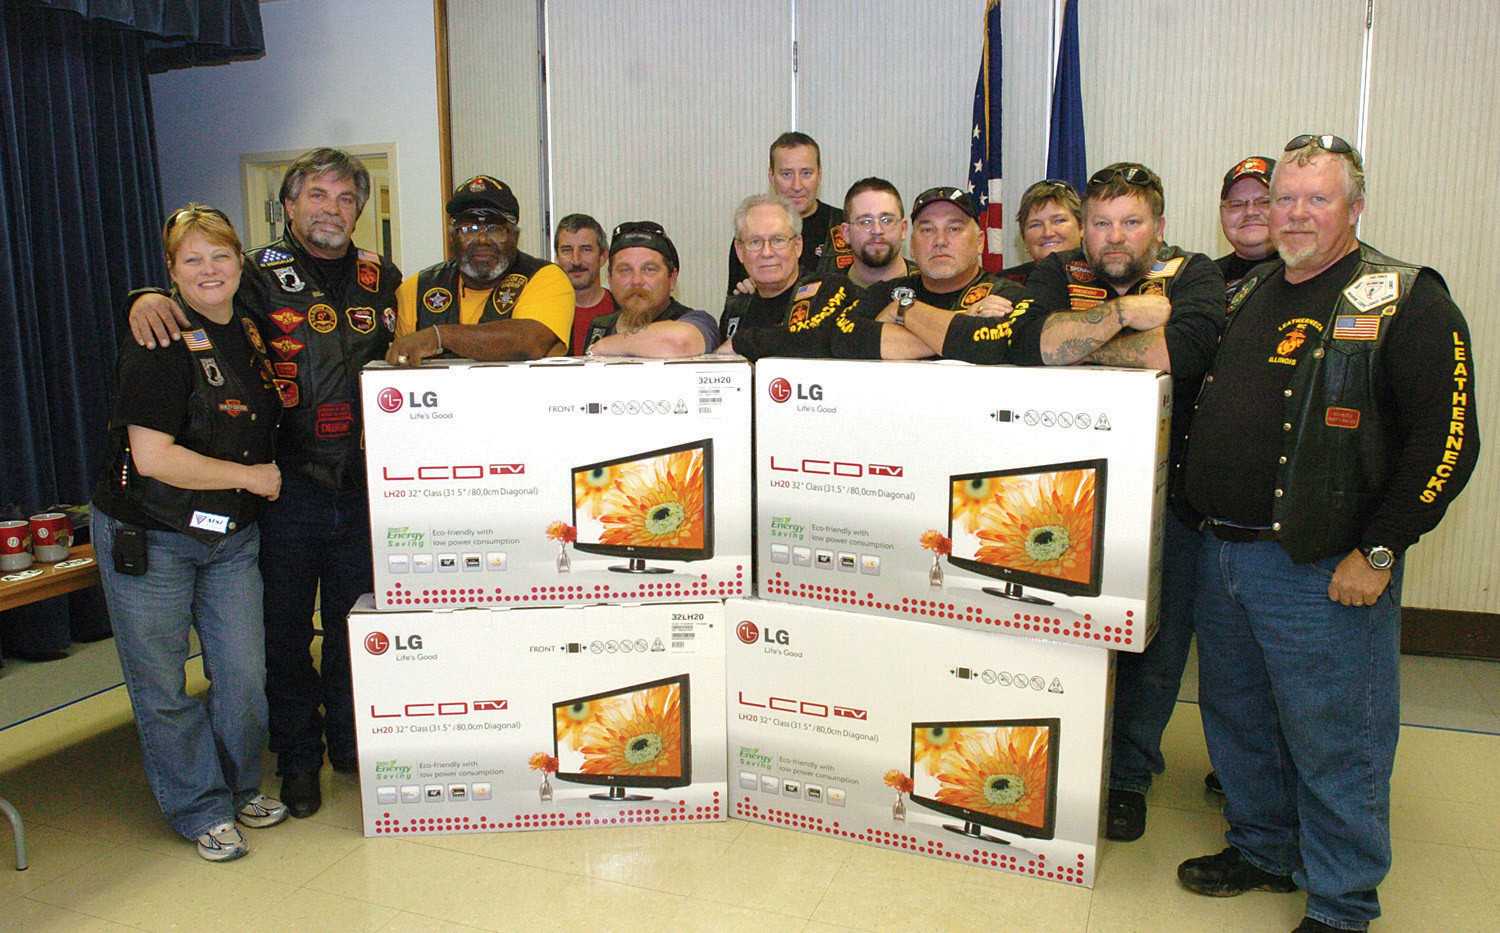 4 new flat screen TV's replace those destoyed in VA hospital fire